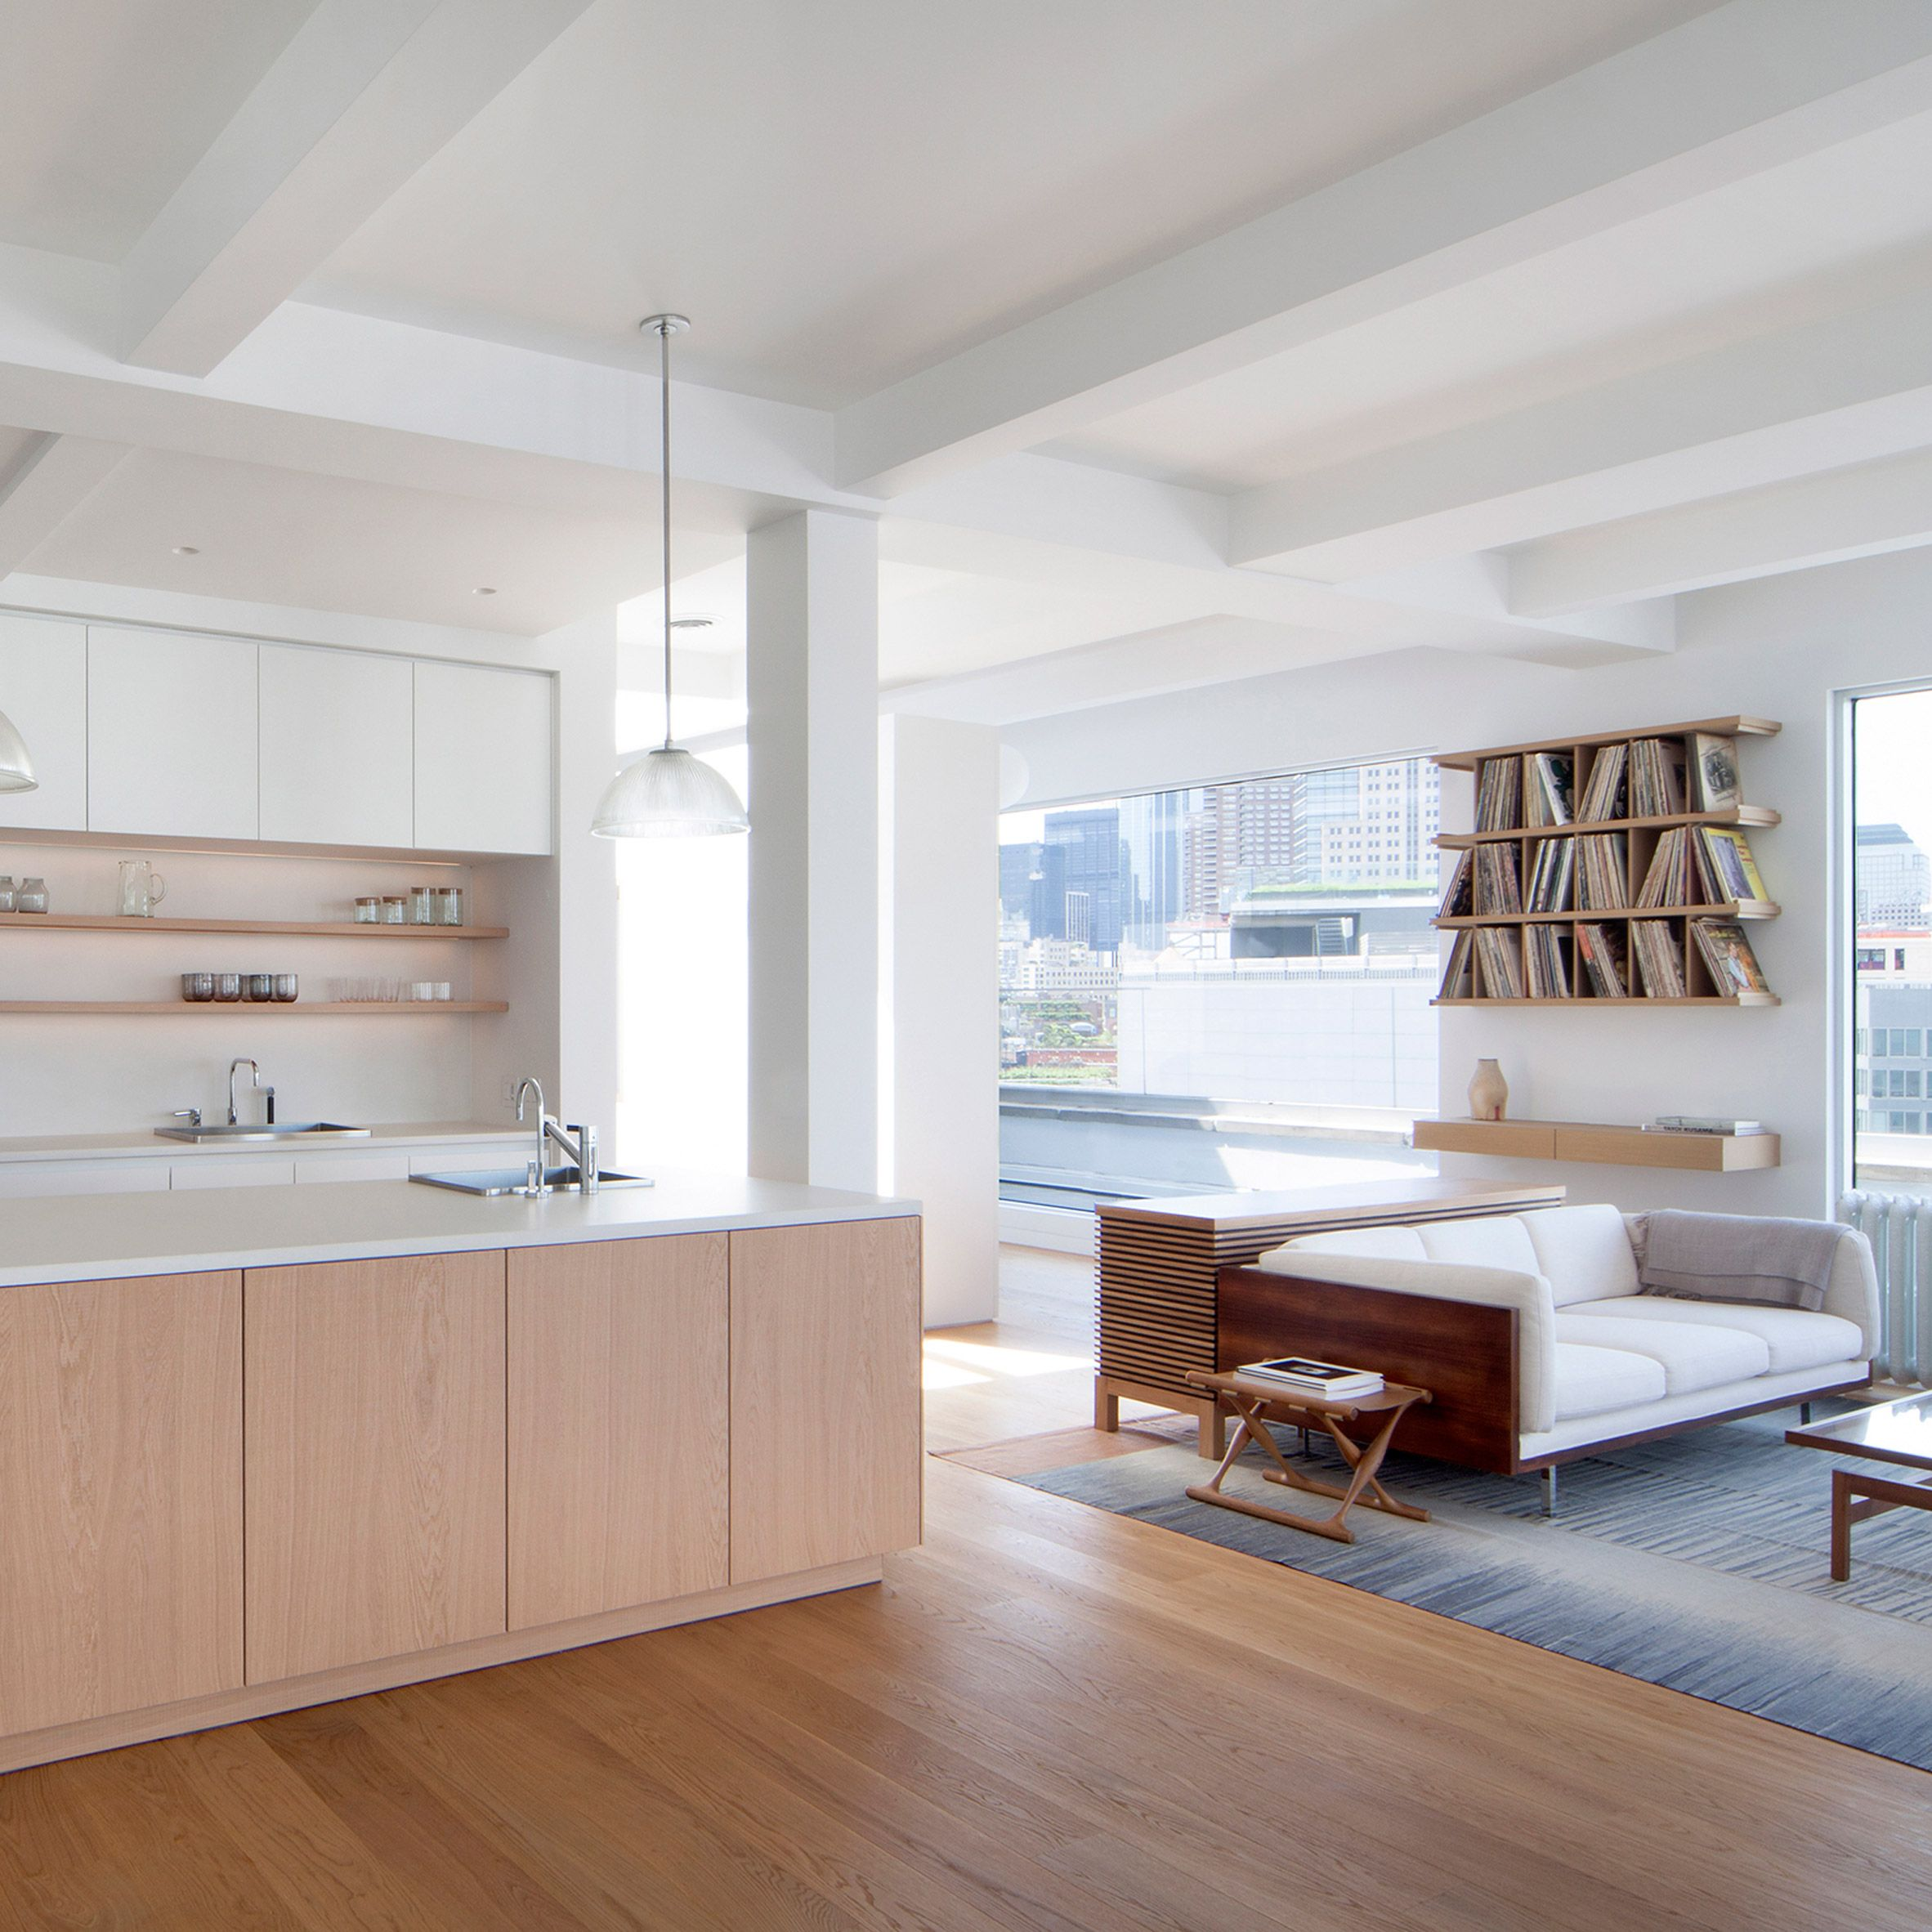 New York Studio Apartments: New York Studio Space4Architecture Has Used Only Three